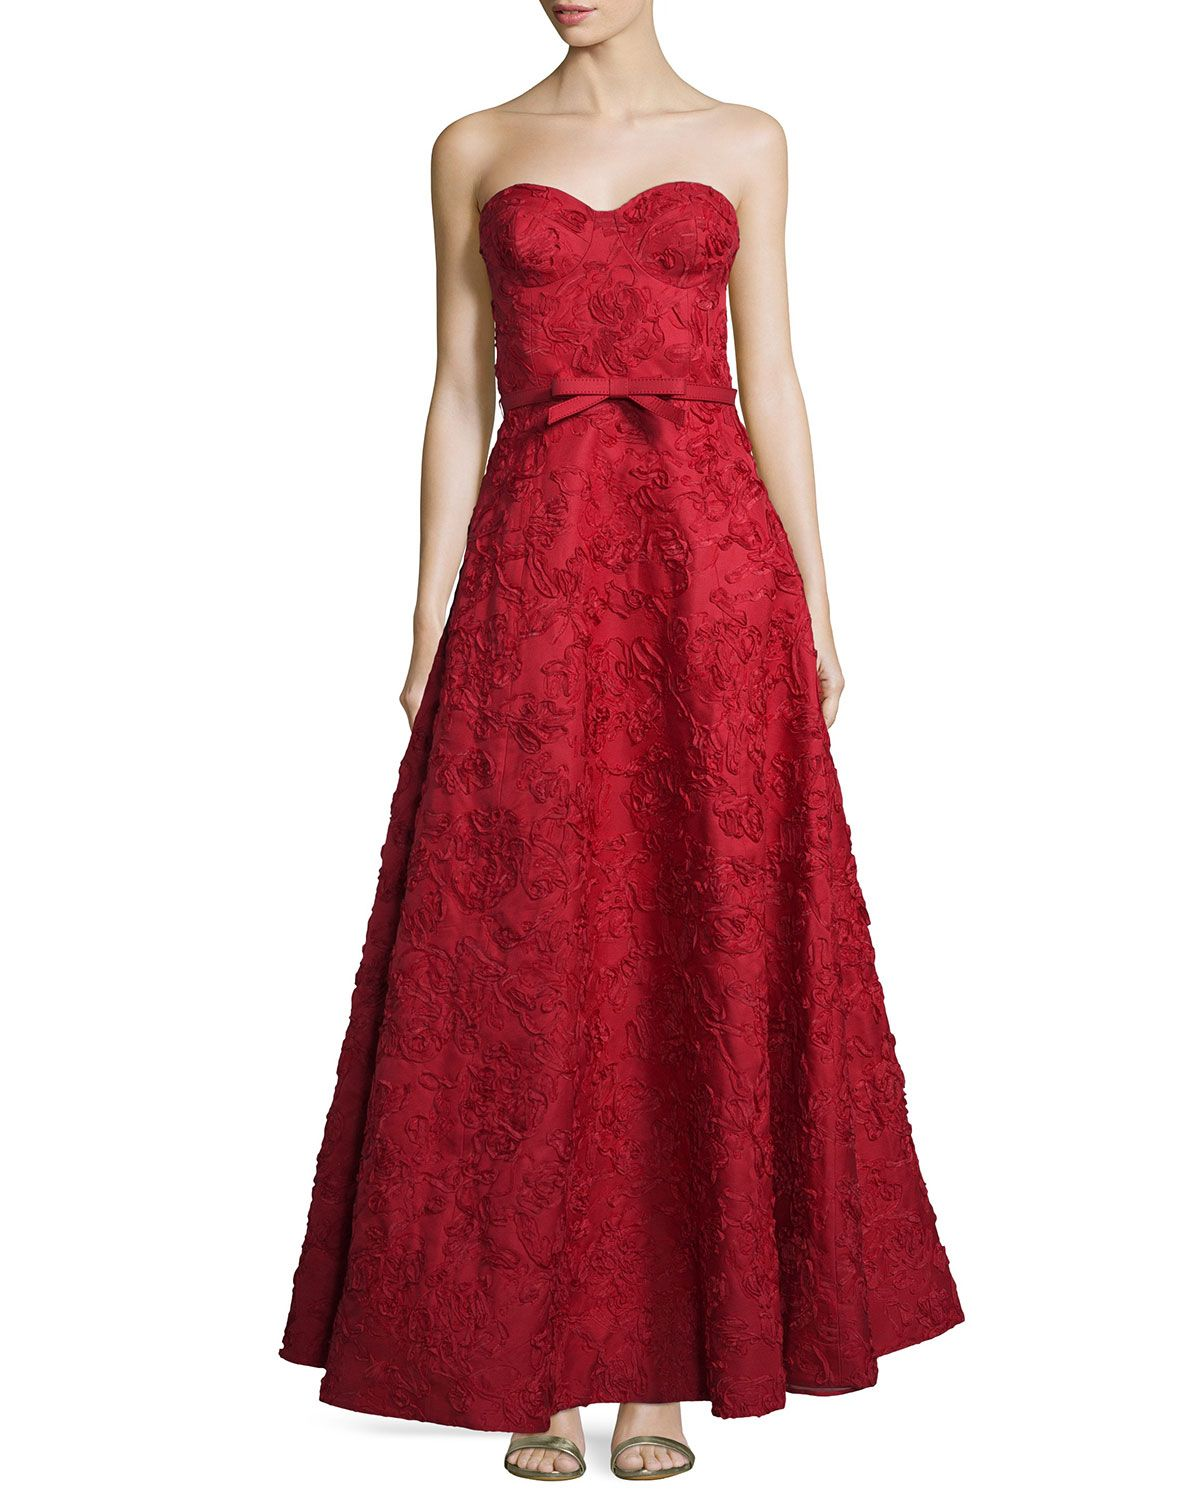 Michael Kors Strapless Bustier Floral-Embroidered Gown, Crimson ...